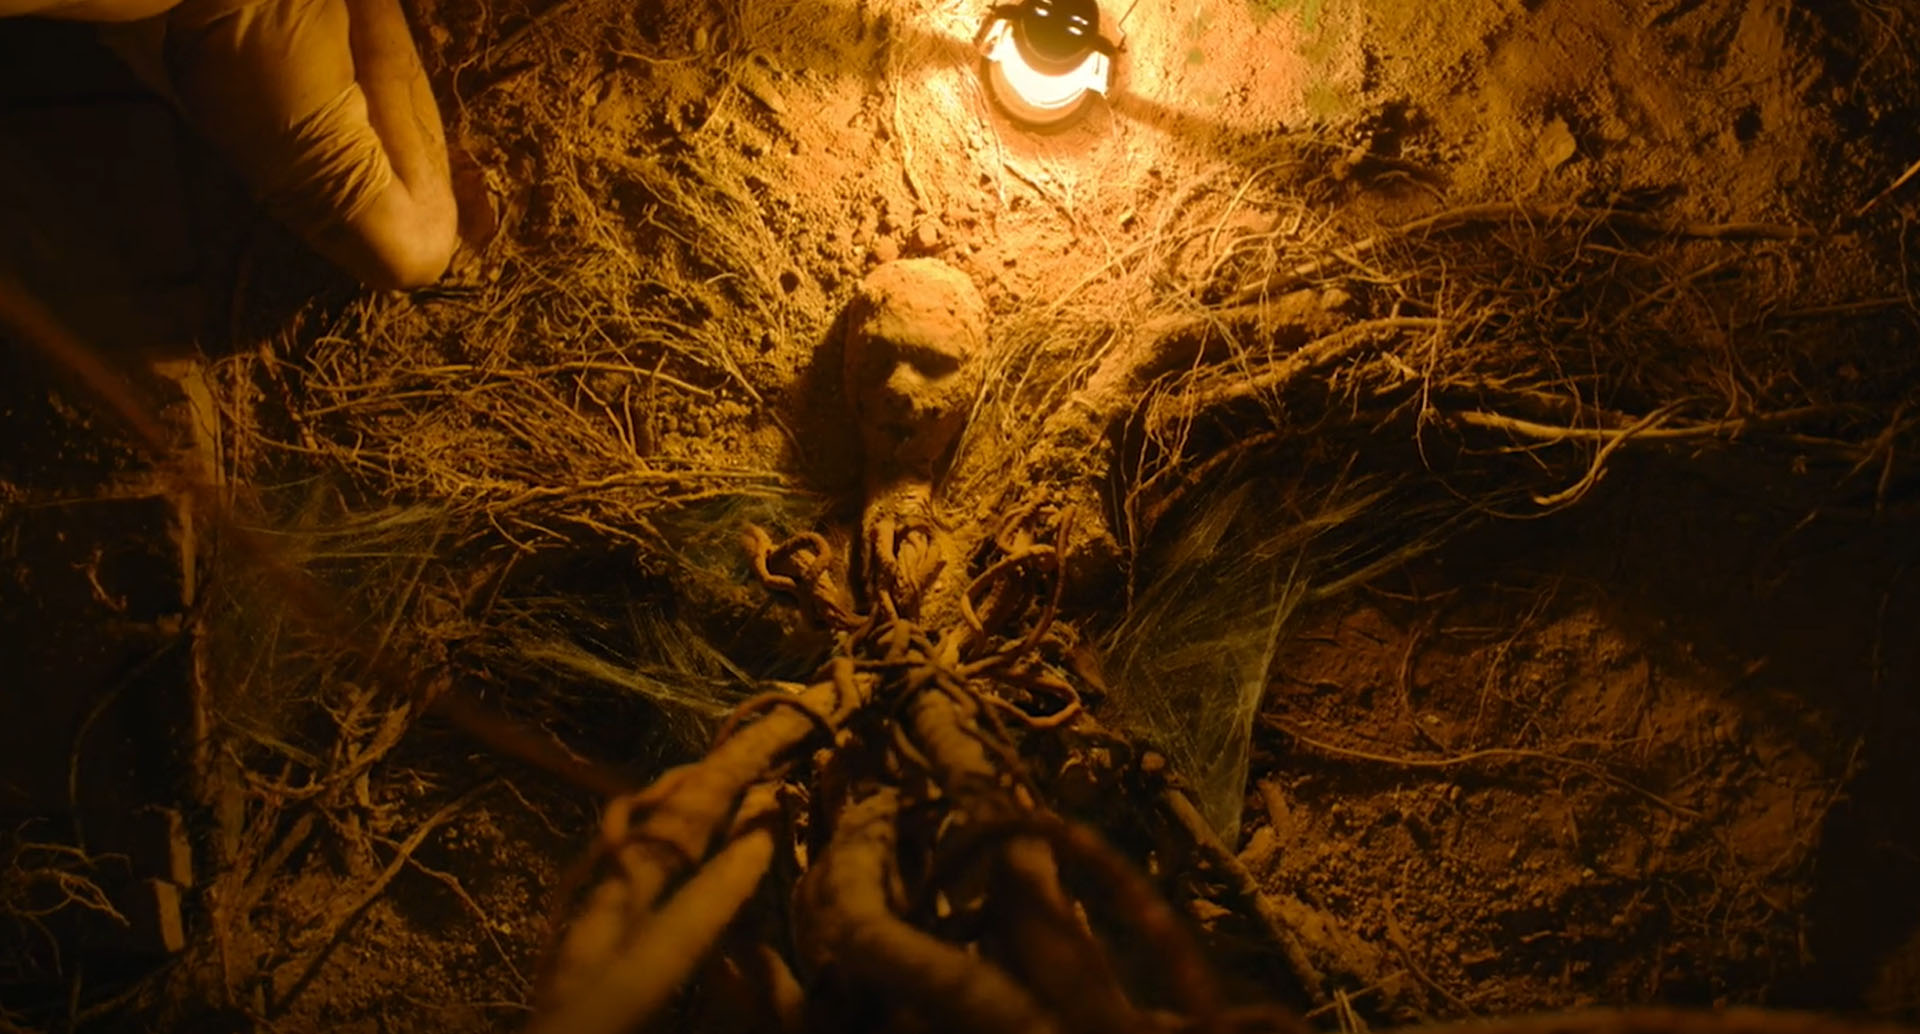 Movie review] Tumbbad - Stylistic Horror Film from India